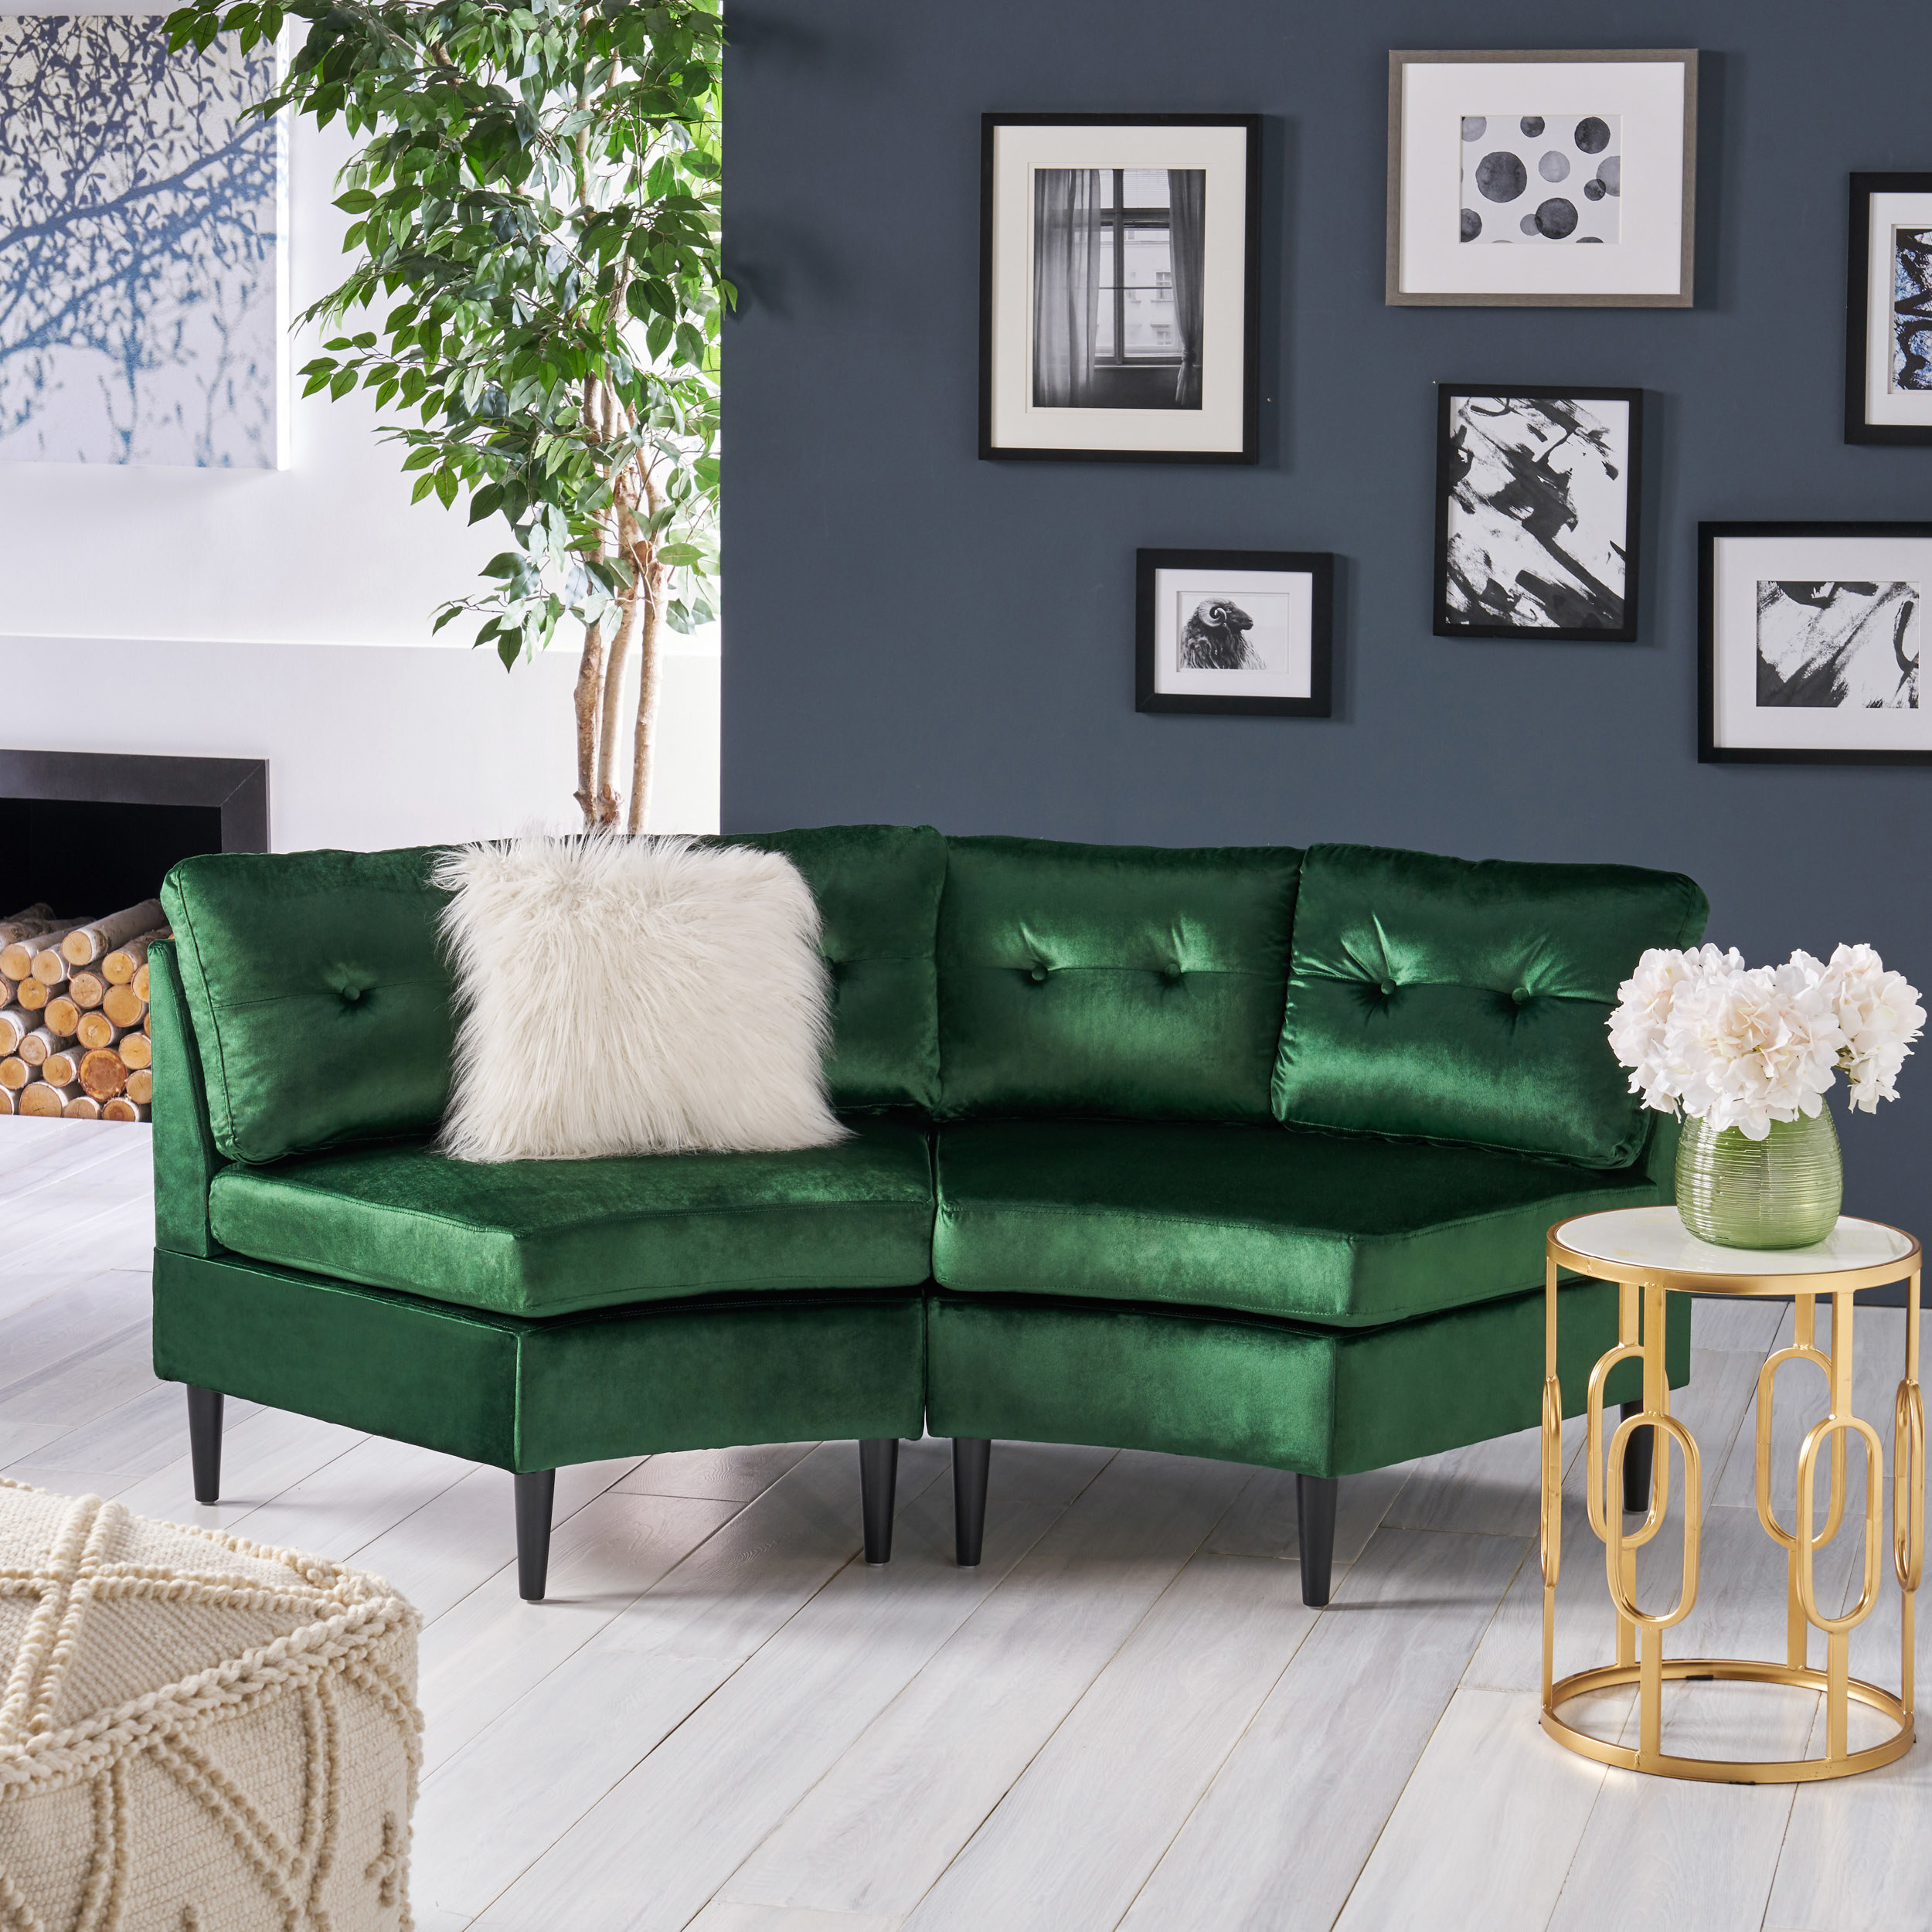 Velvet green modular couch with two seats and black legs